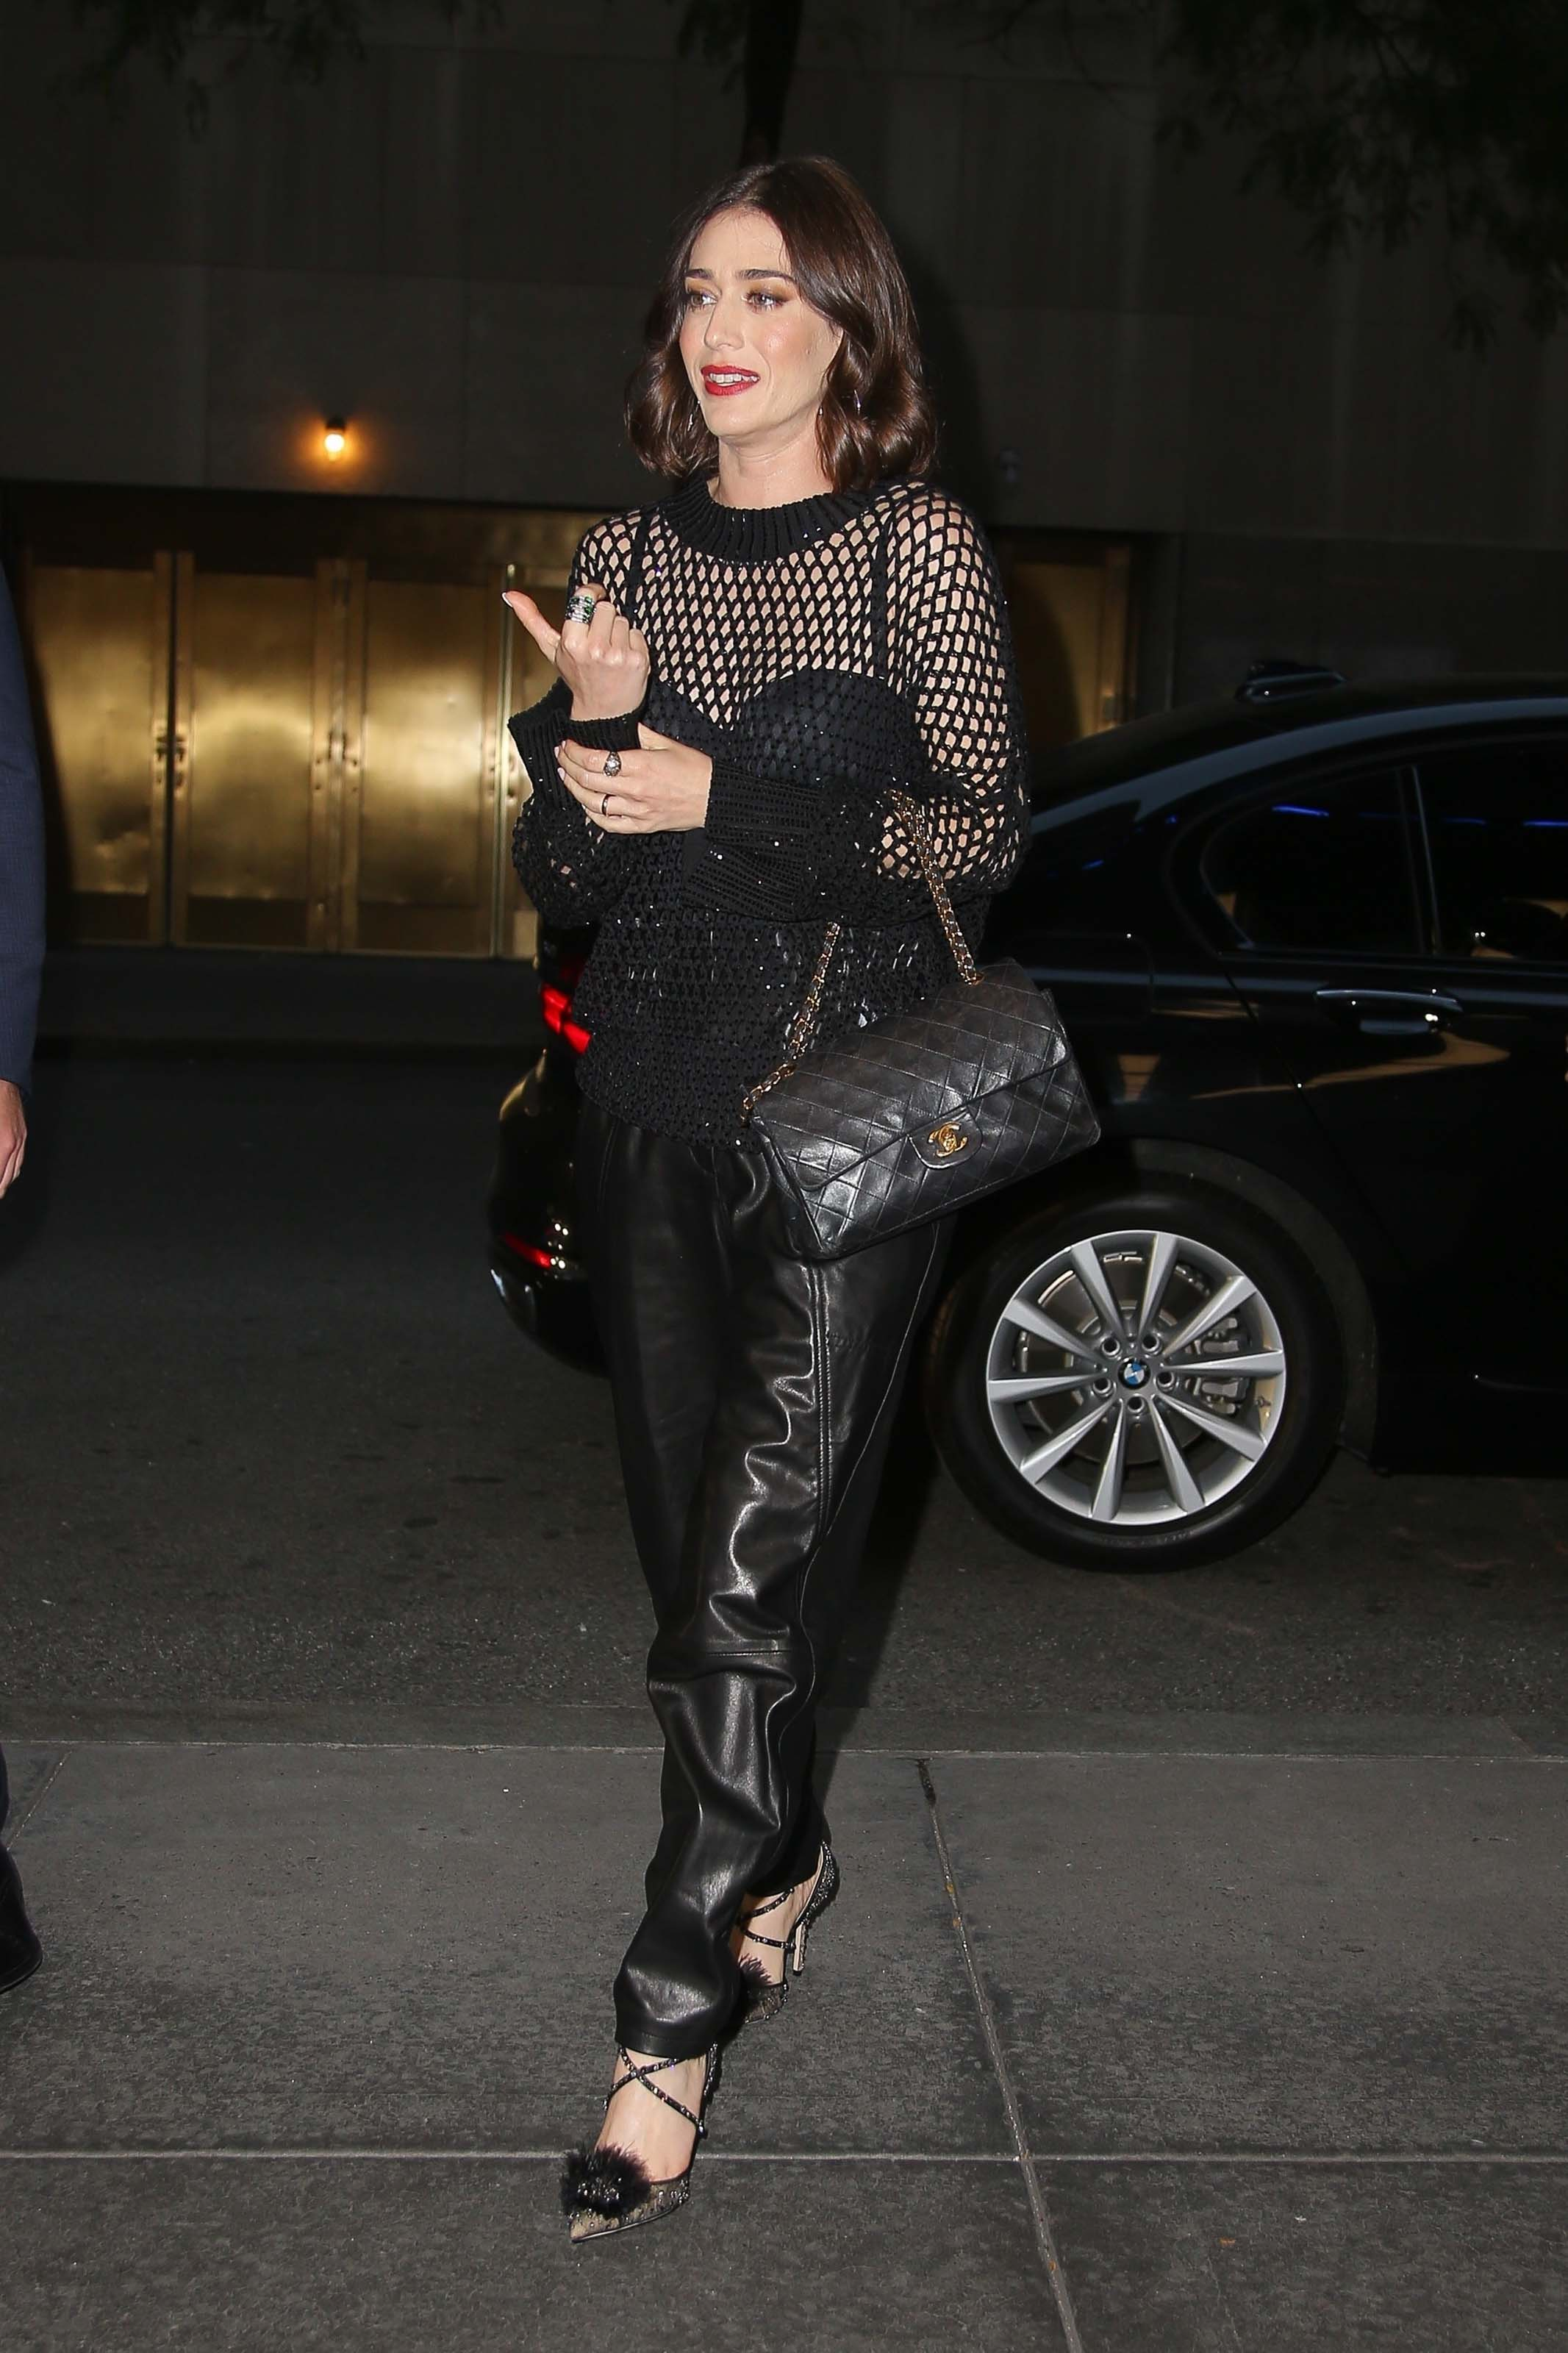 Lizzy Caplan looks stylish in a leather pants